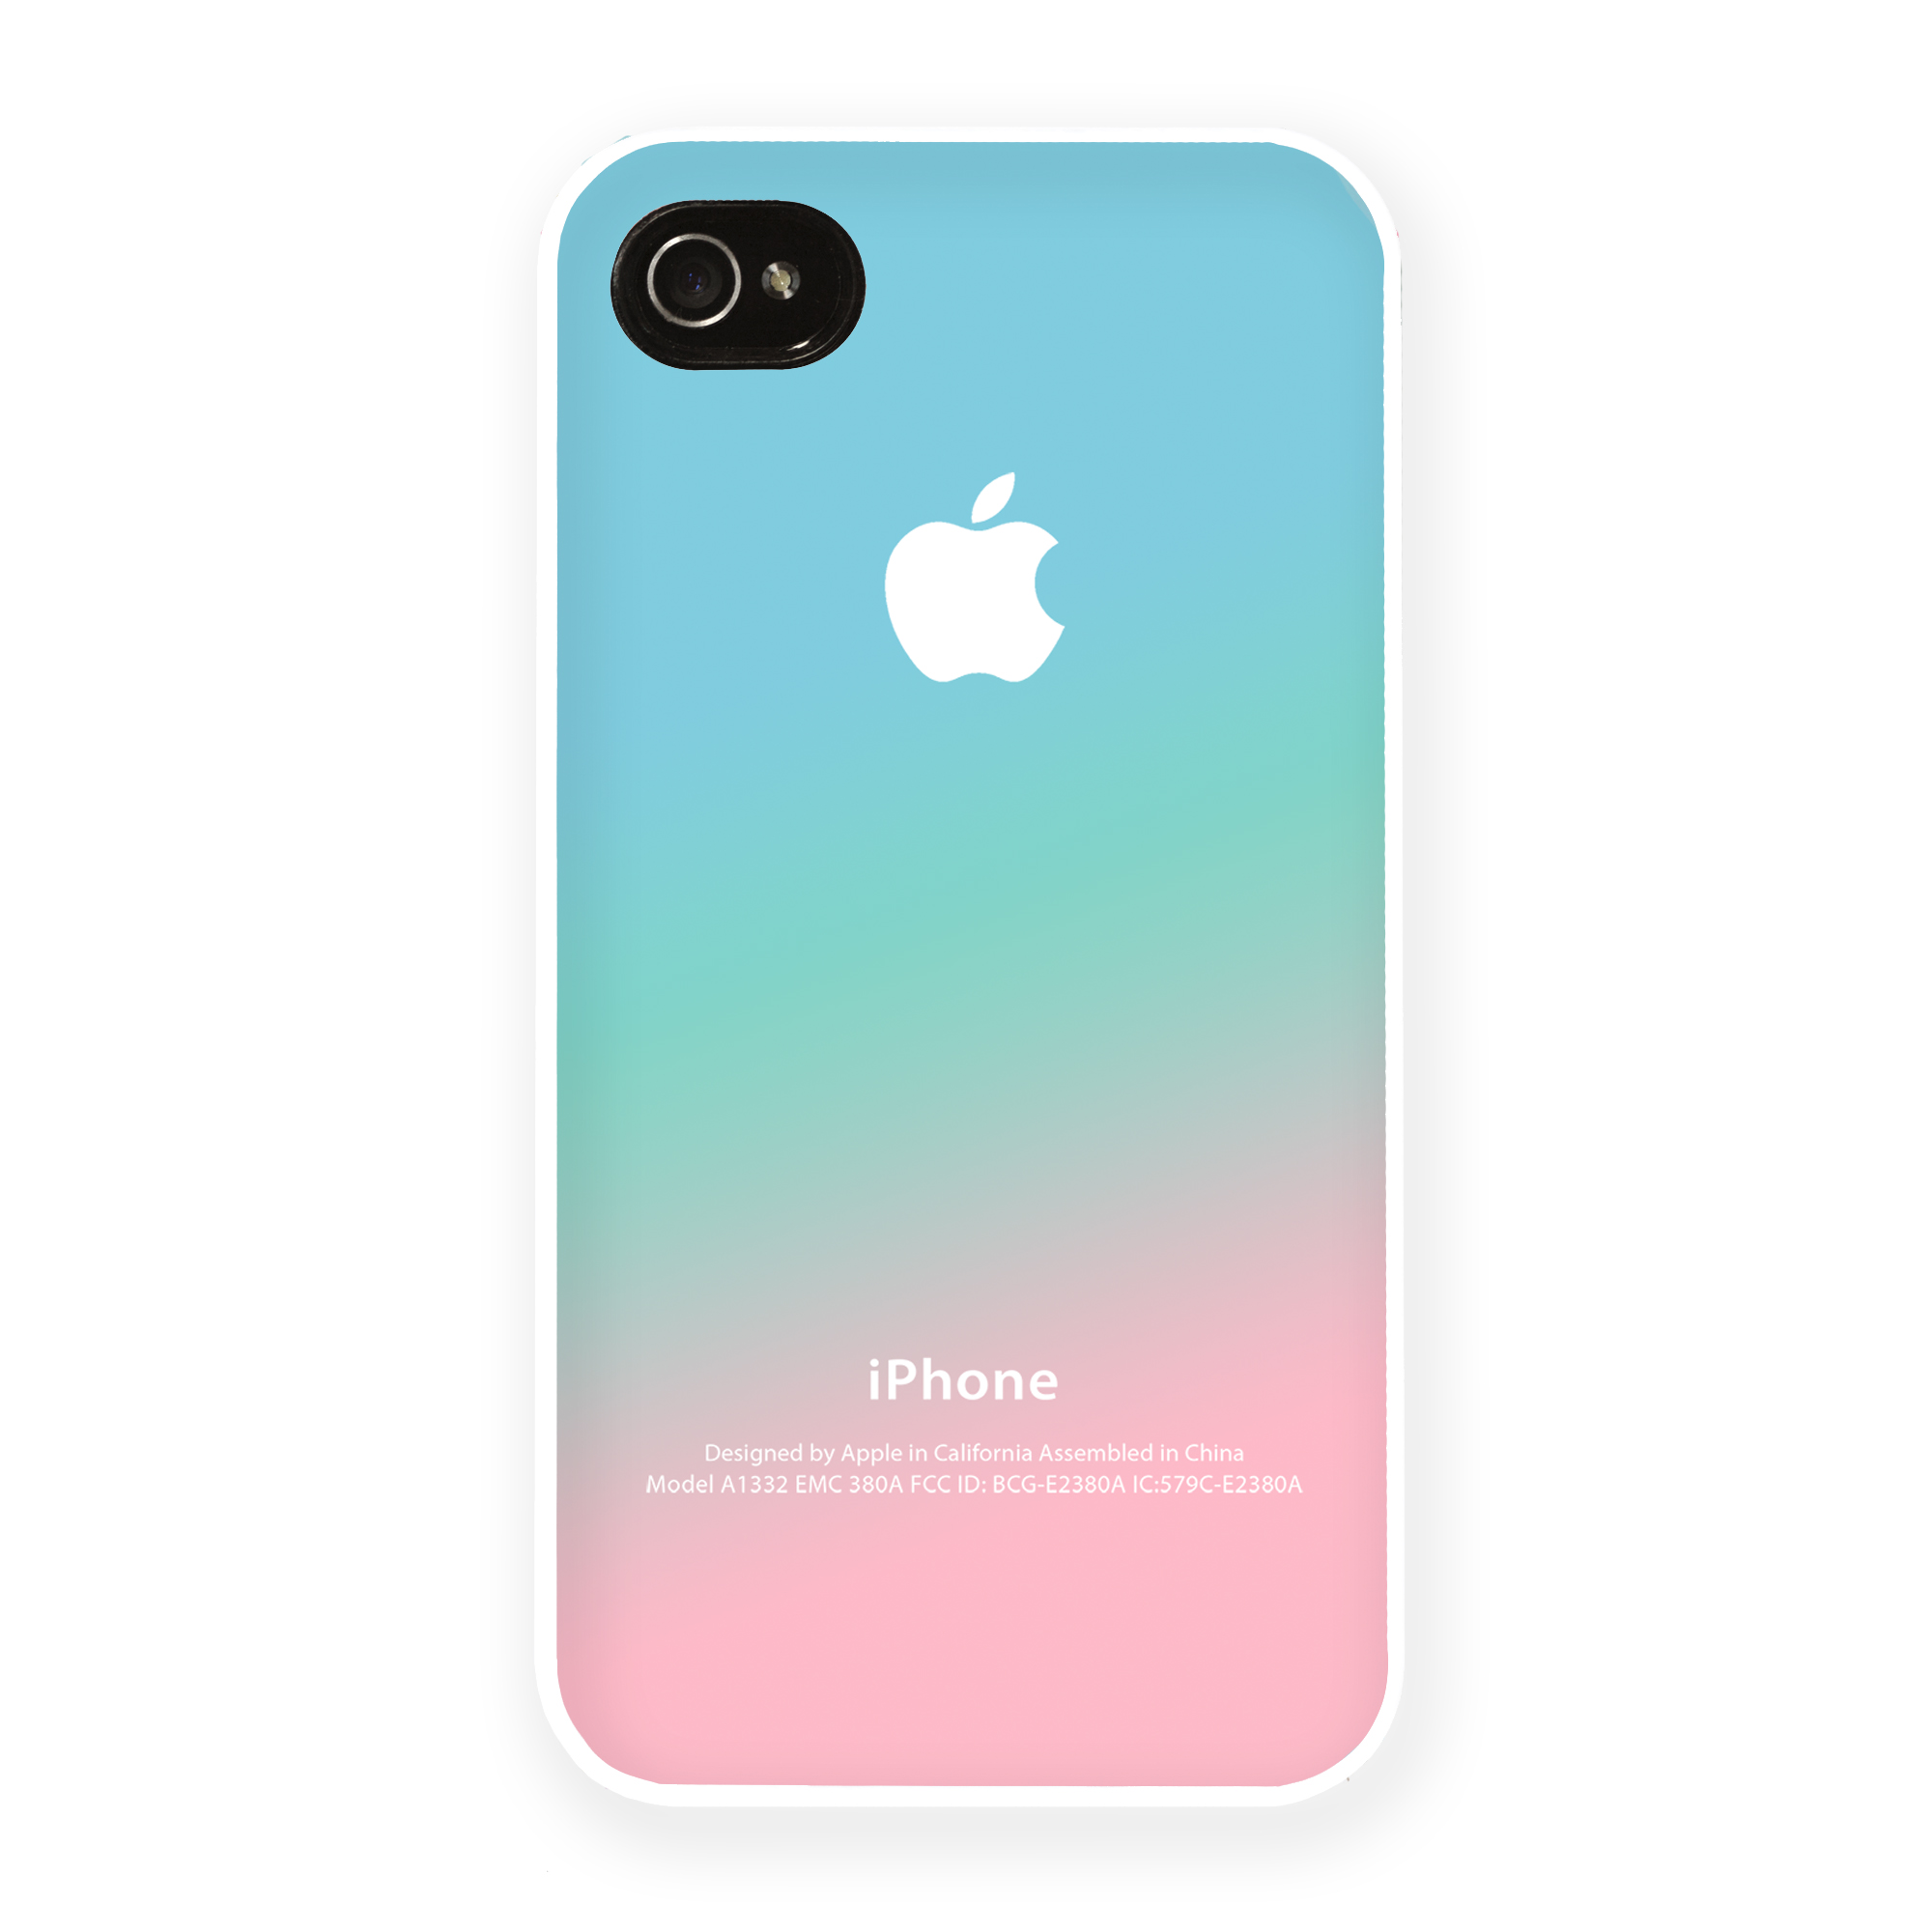 huge selection of 4407e 75a2f Pastel iPhone 5 Case iPhone 4 Case iPhone 4S Case iPhone 5C Case New Apple  Logo Pink Aqua Teal Pastel Ombre